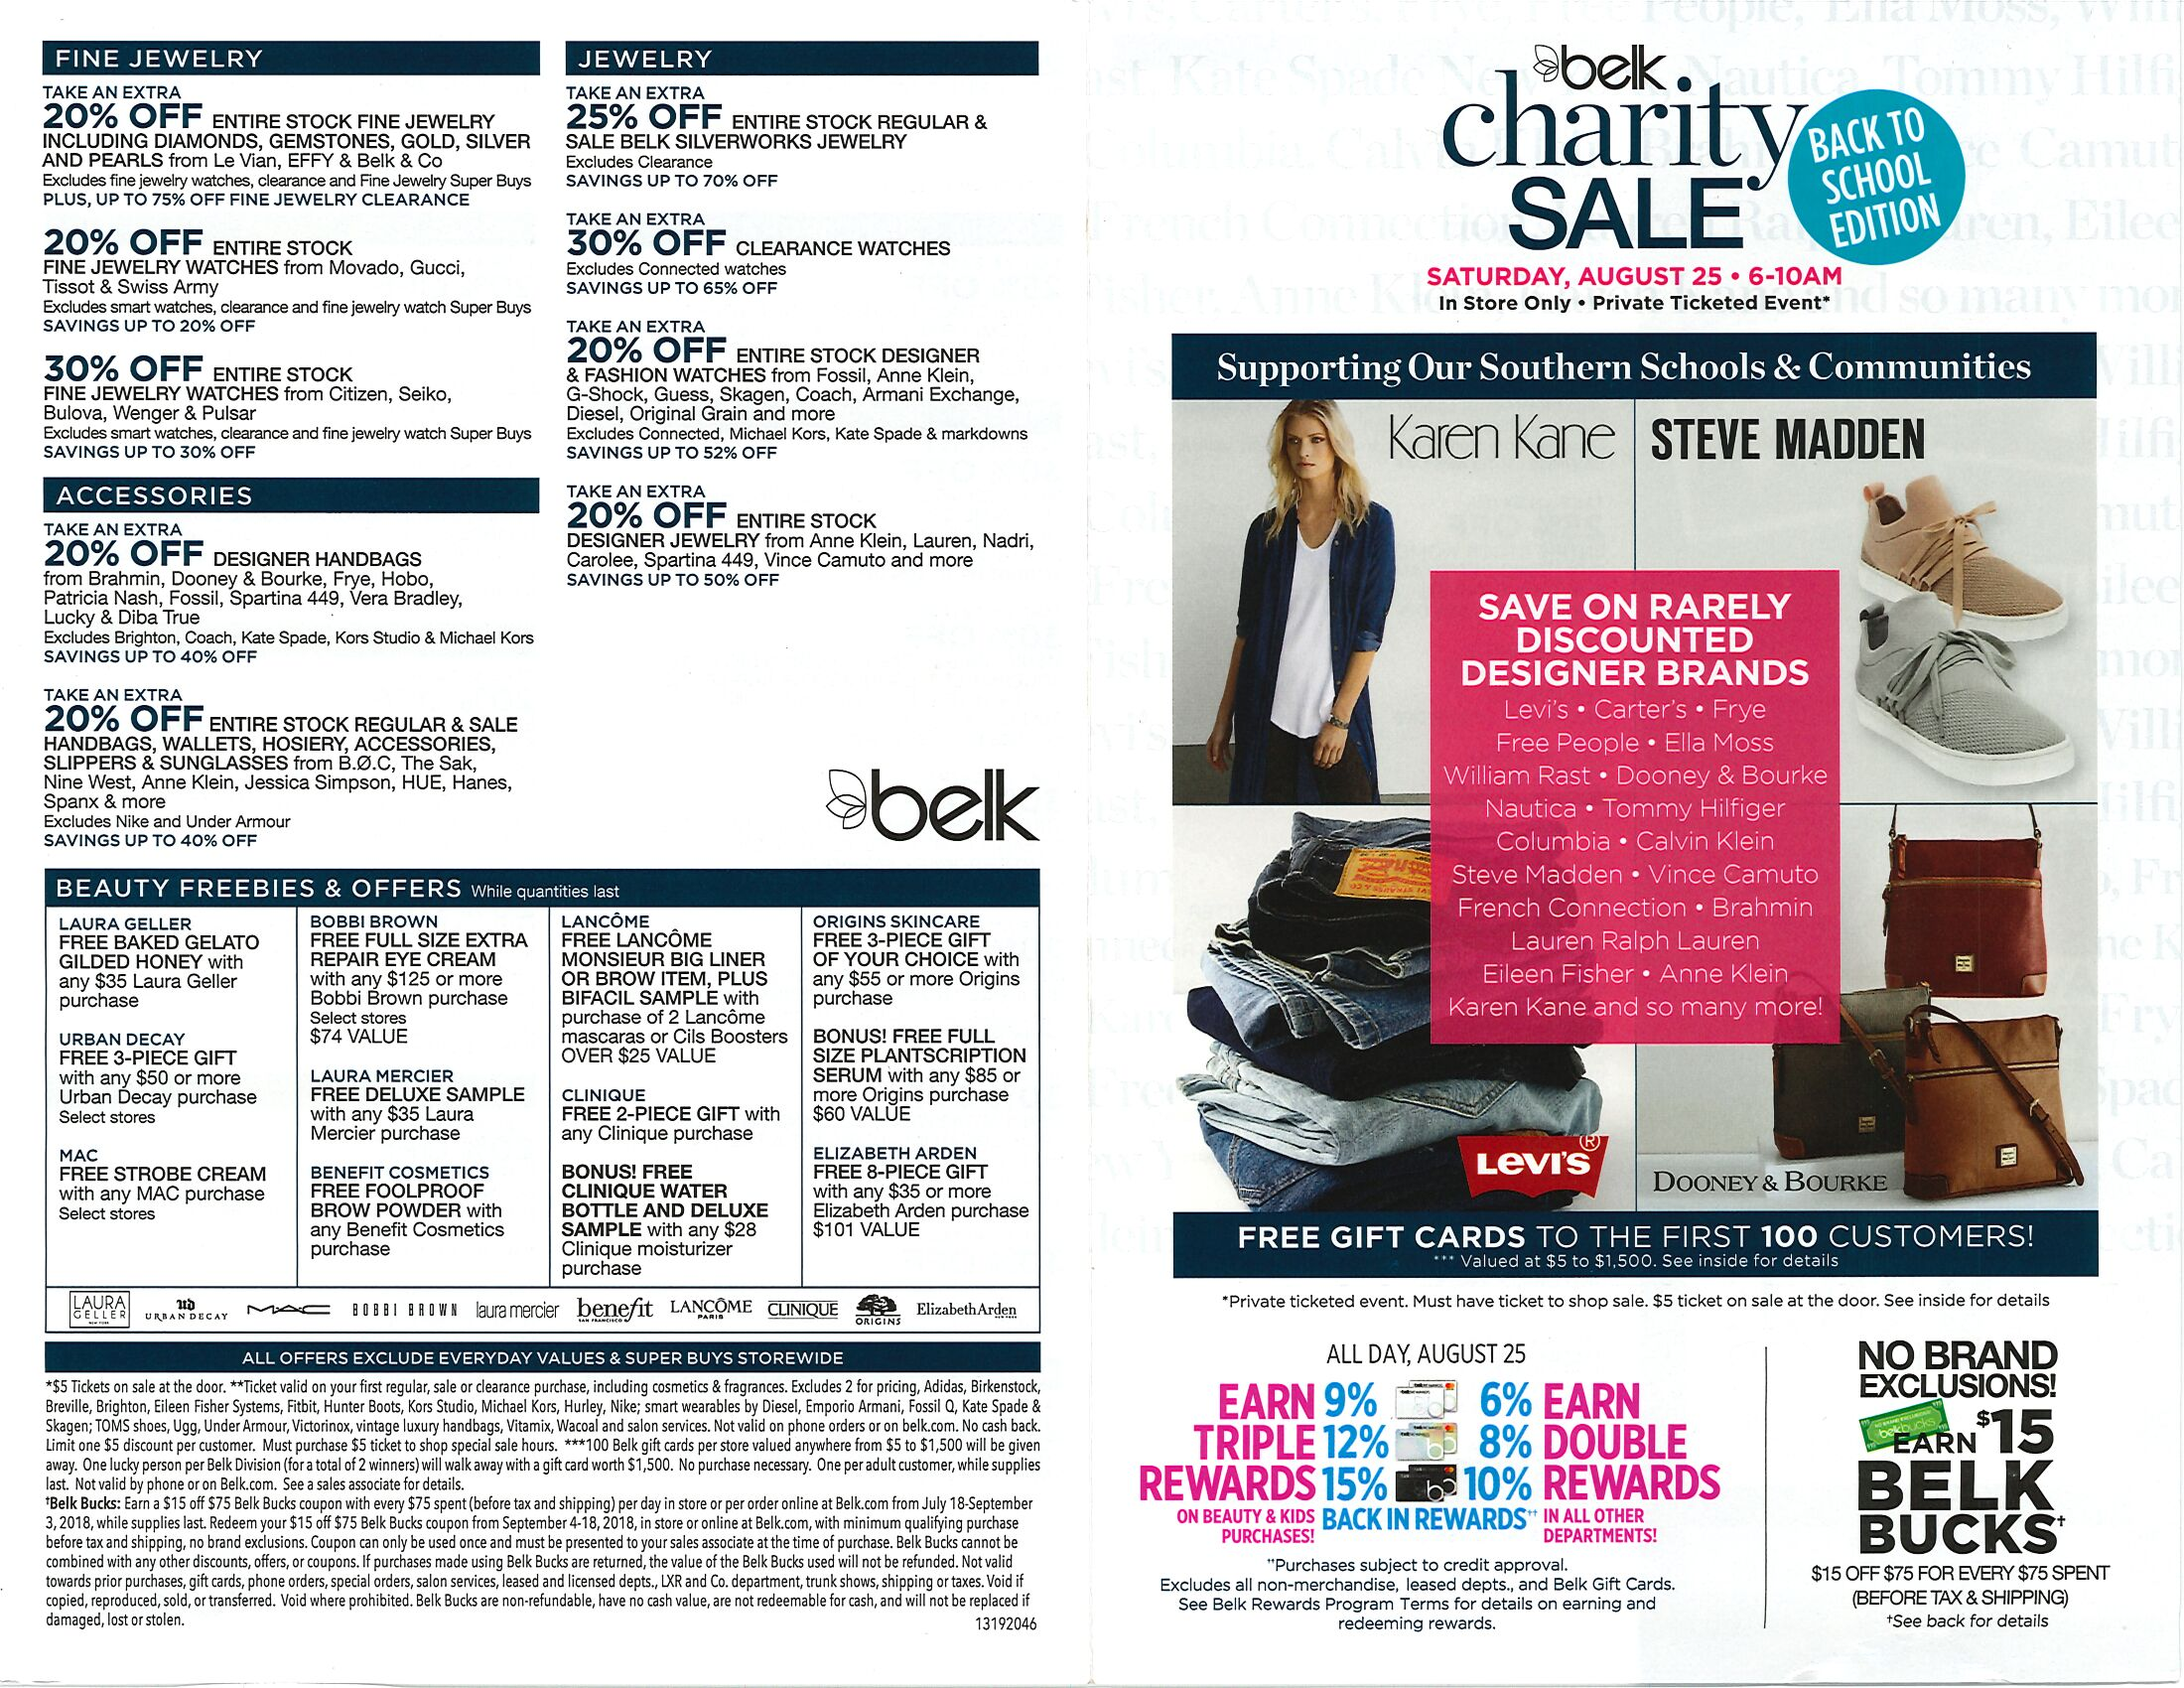 Belk Charity Sale Page 2